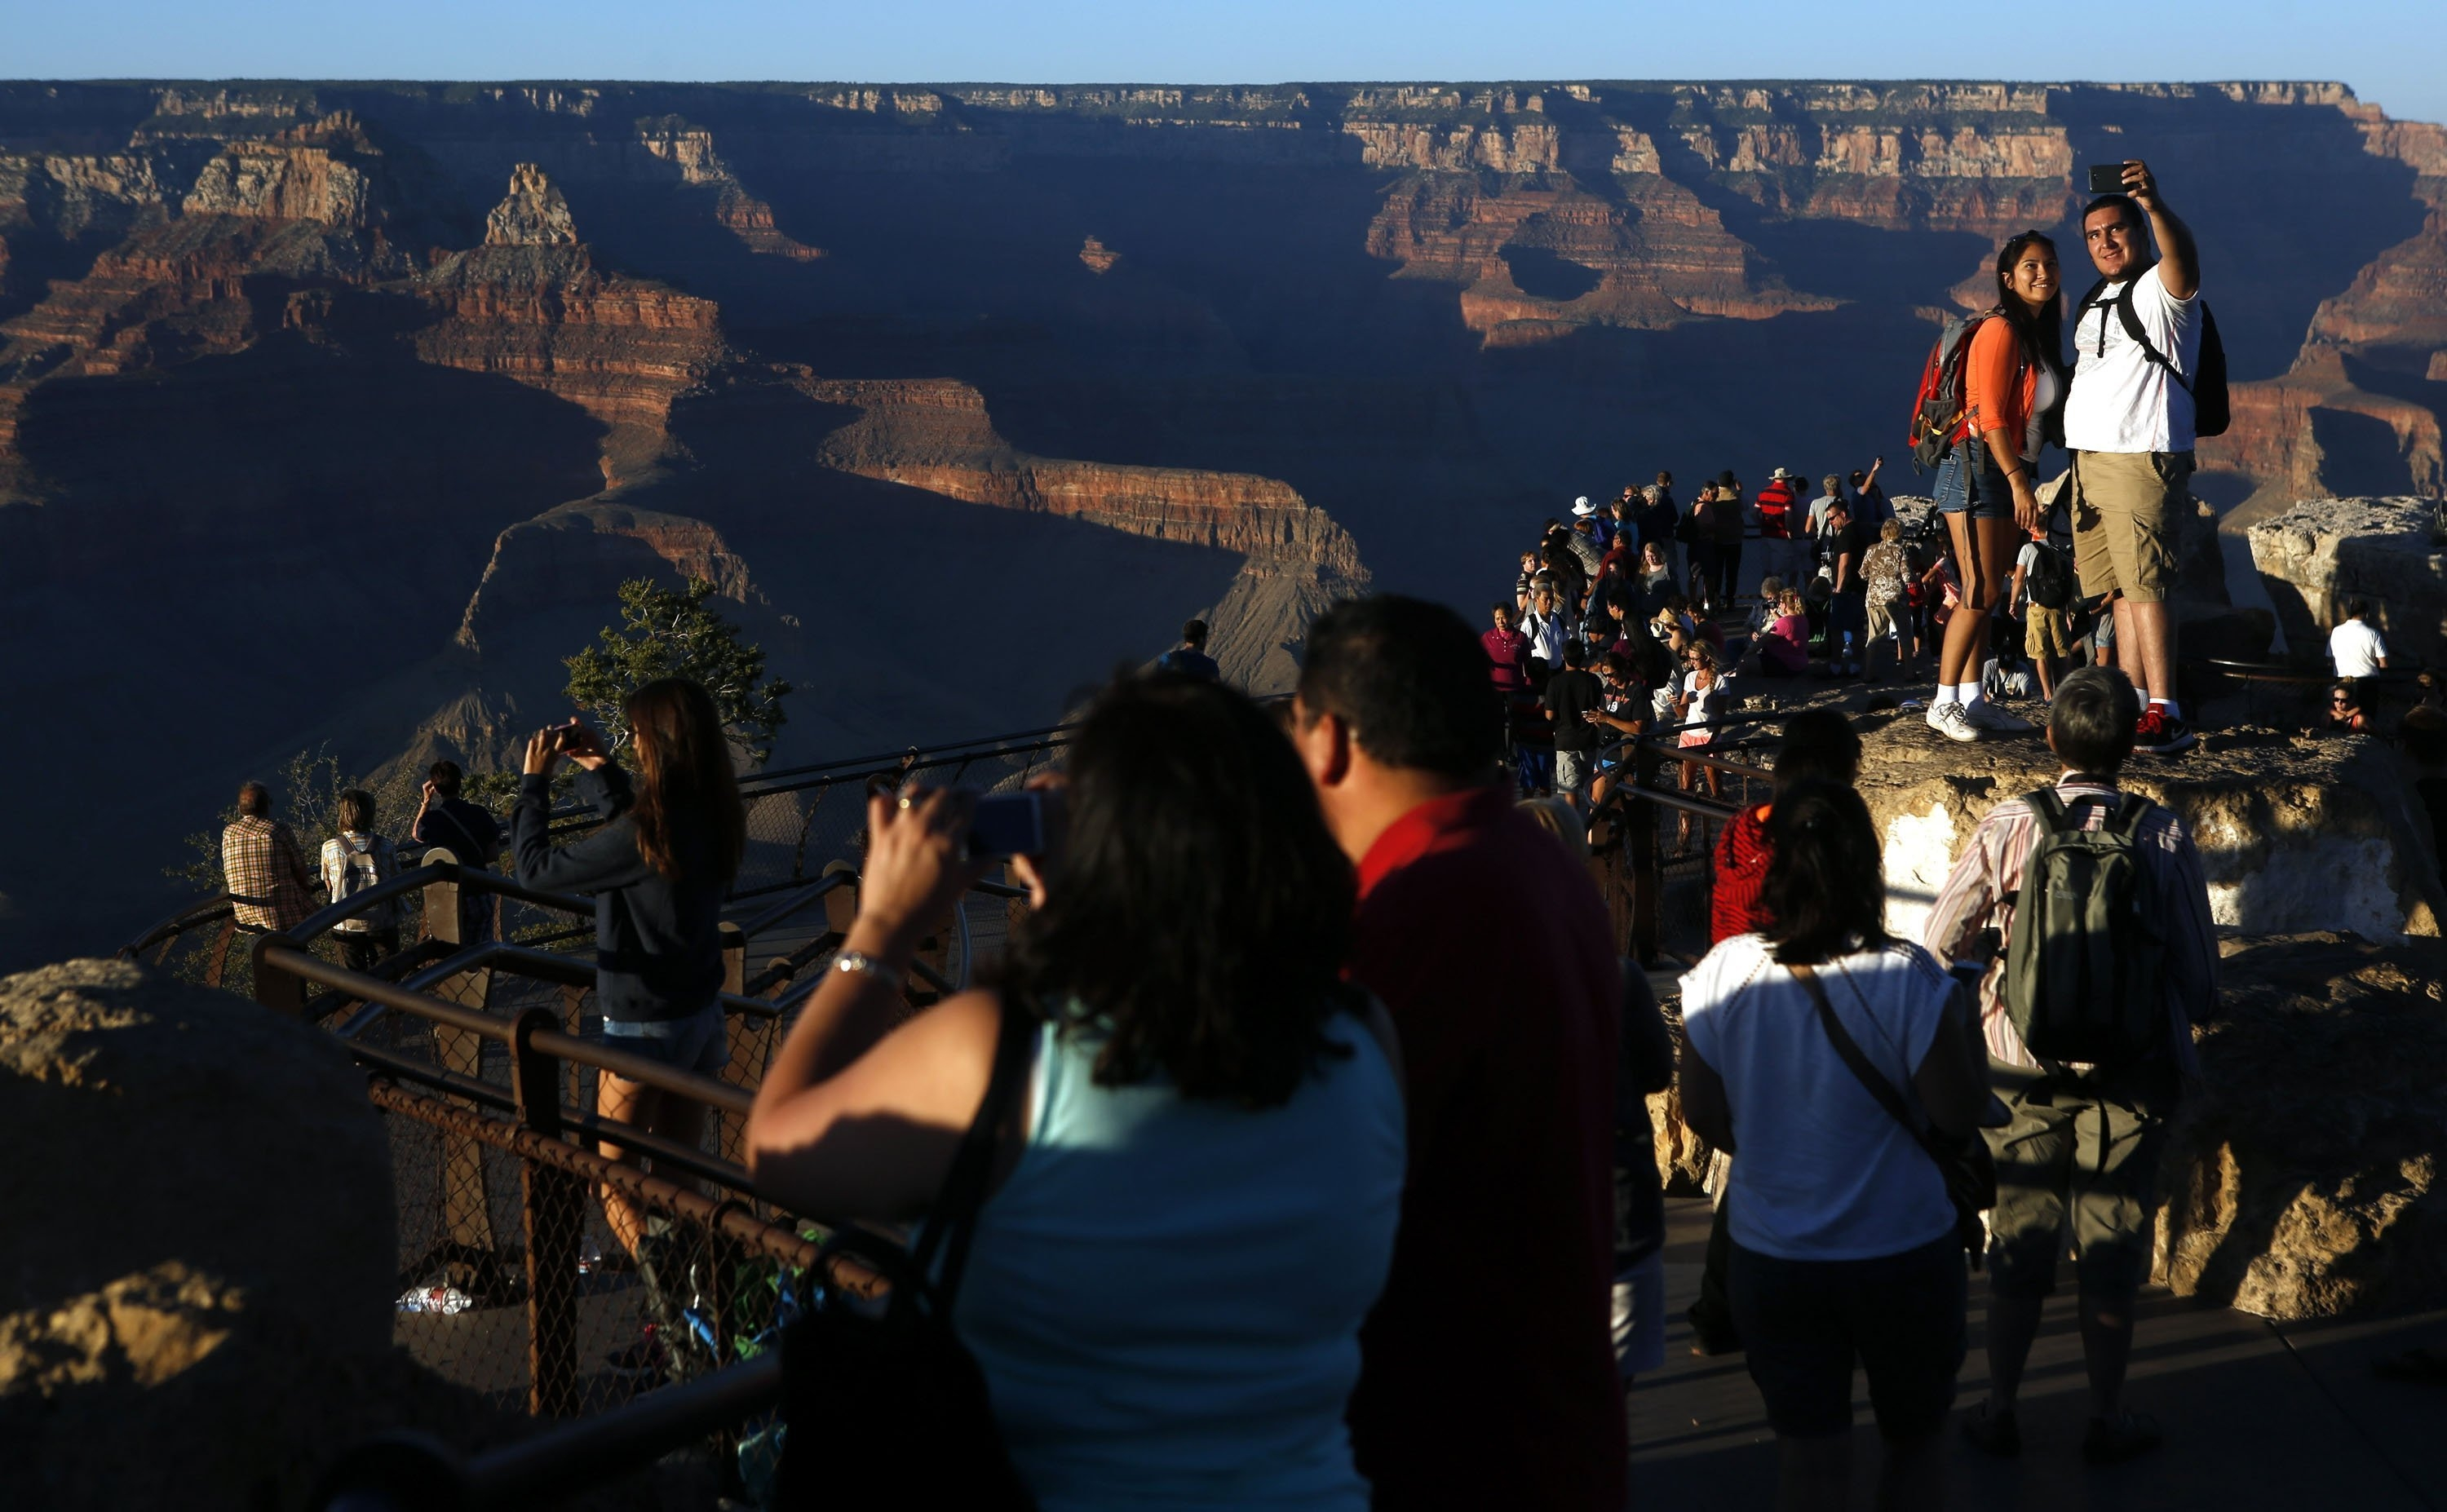 Visitors take in the view of the Grand Canyon at Mather Point on the Southern Rim in January. The town of Tusayan, Ariz., has proposed adding commercial development near the canyon that is being fought by the National Park Service.